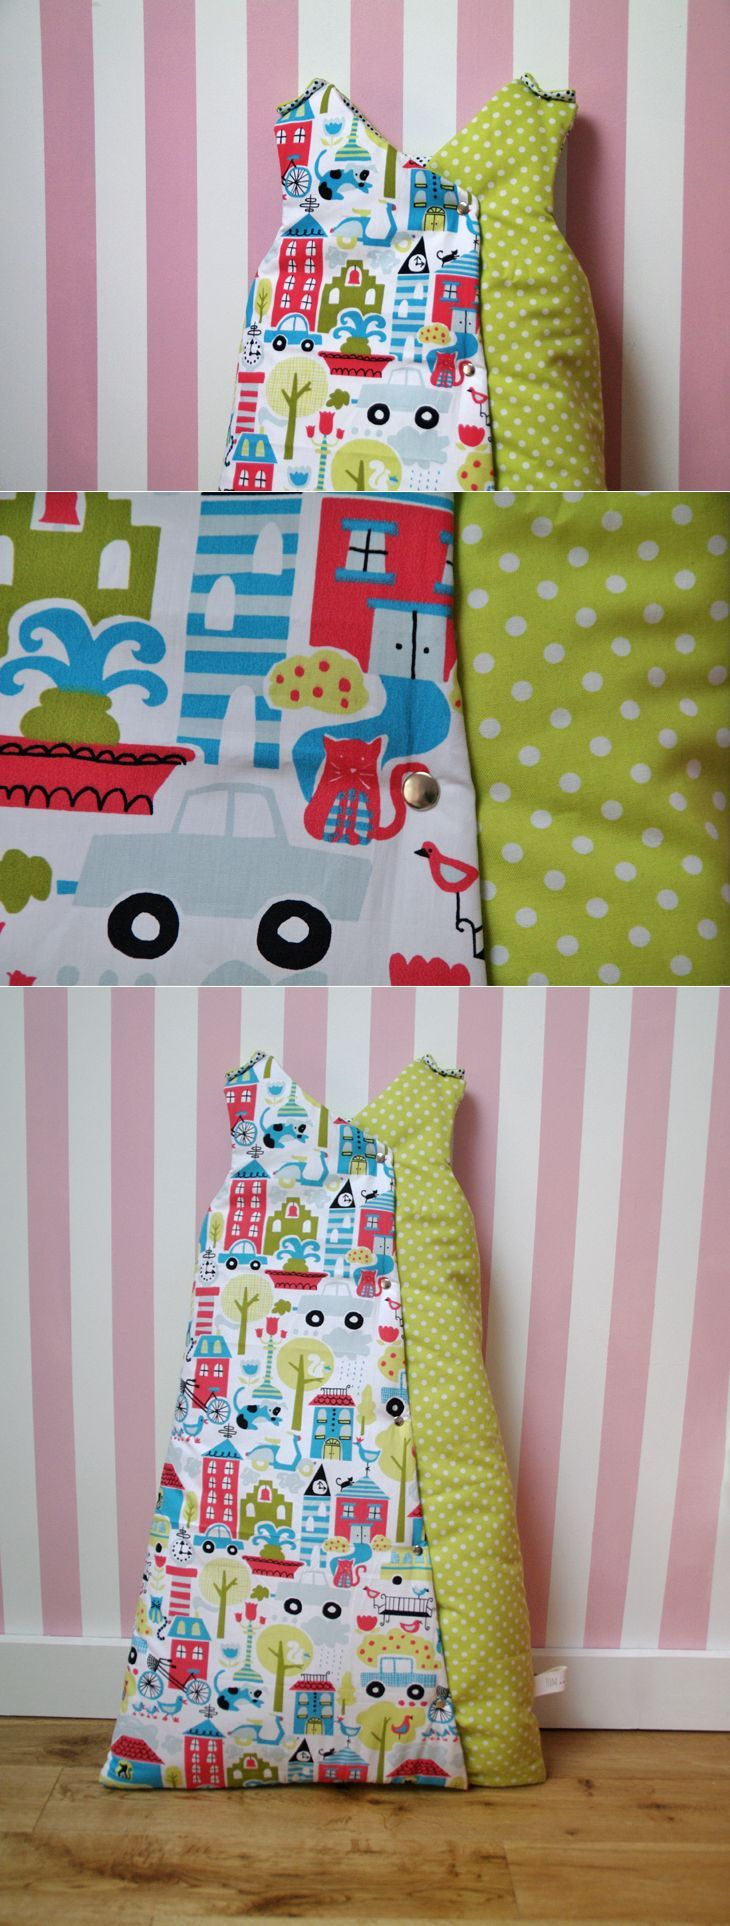 baby sleeping bag town pattern & 35 best DIY pillow case and sleeping bag images on Pinterest | Diy ... pillowsntoast.com